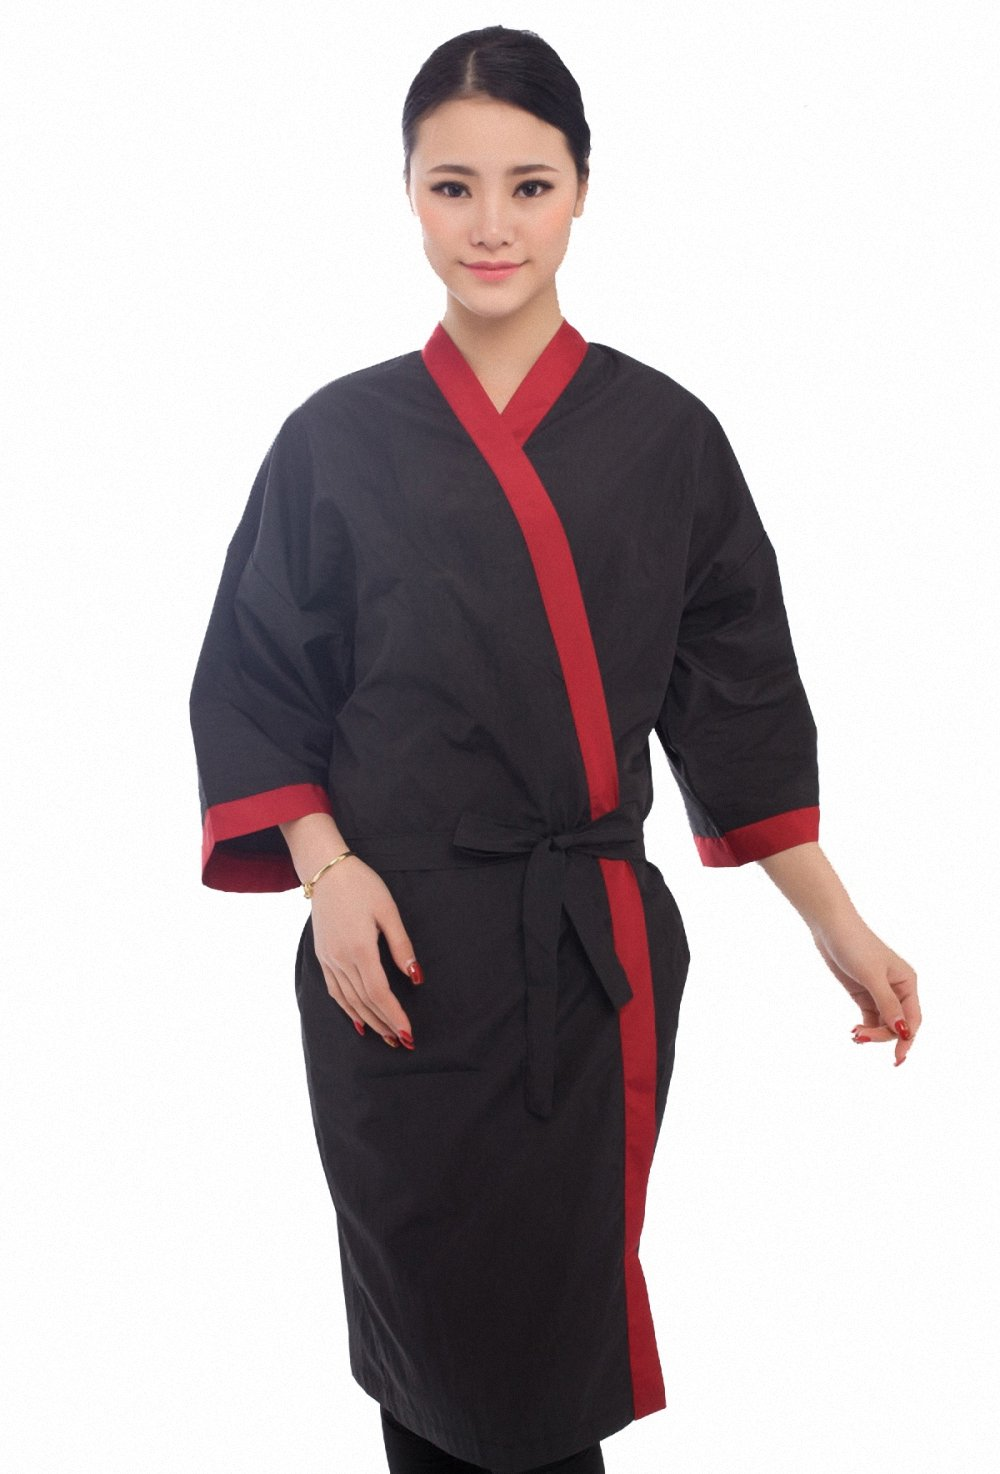 Salon Client Gown Robes Cape, Hair Salon Smock for Clients- Kimono Style - Red Trim Perfehair SW001